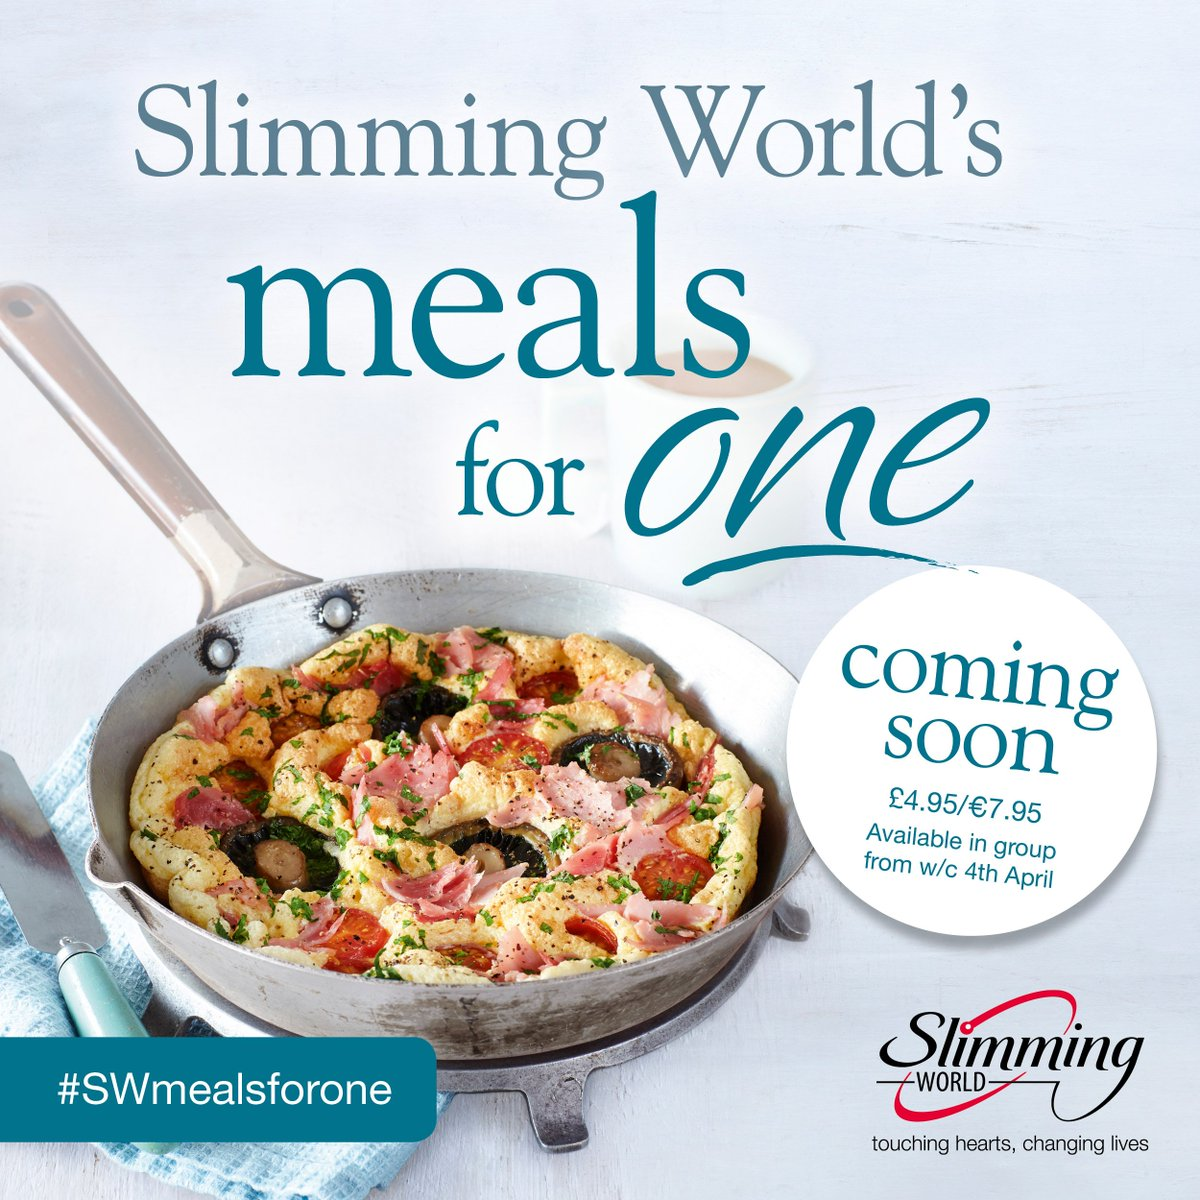 Slimming World On Twitter Packed With 60 Super Simple Recipes You 39 Ll Love Our New Recipe Book